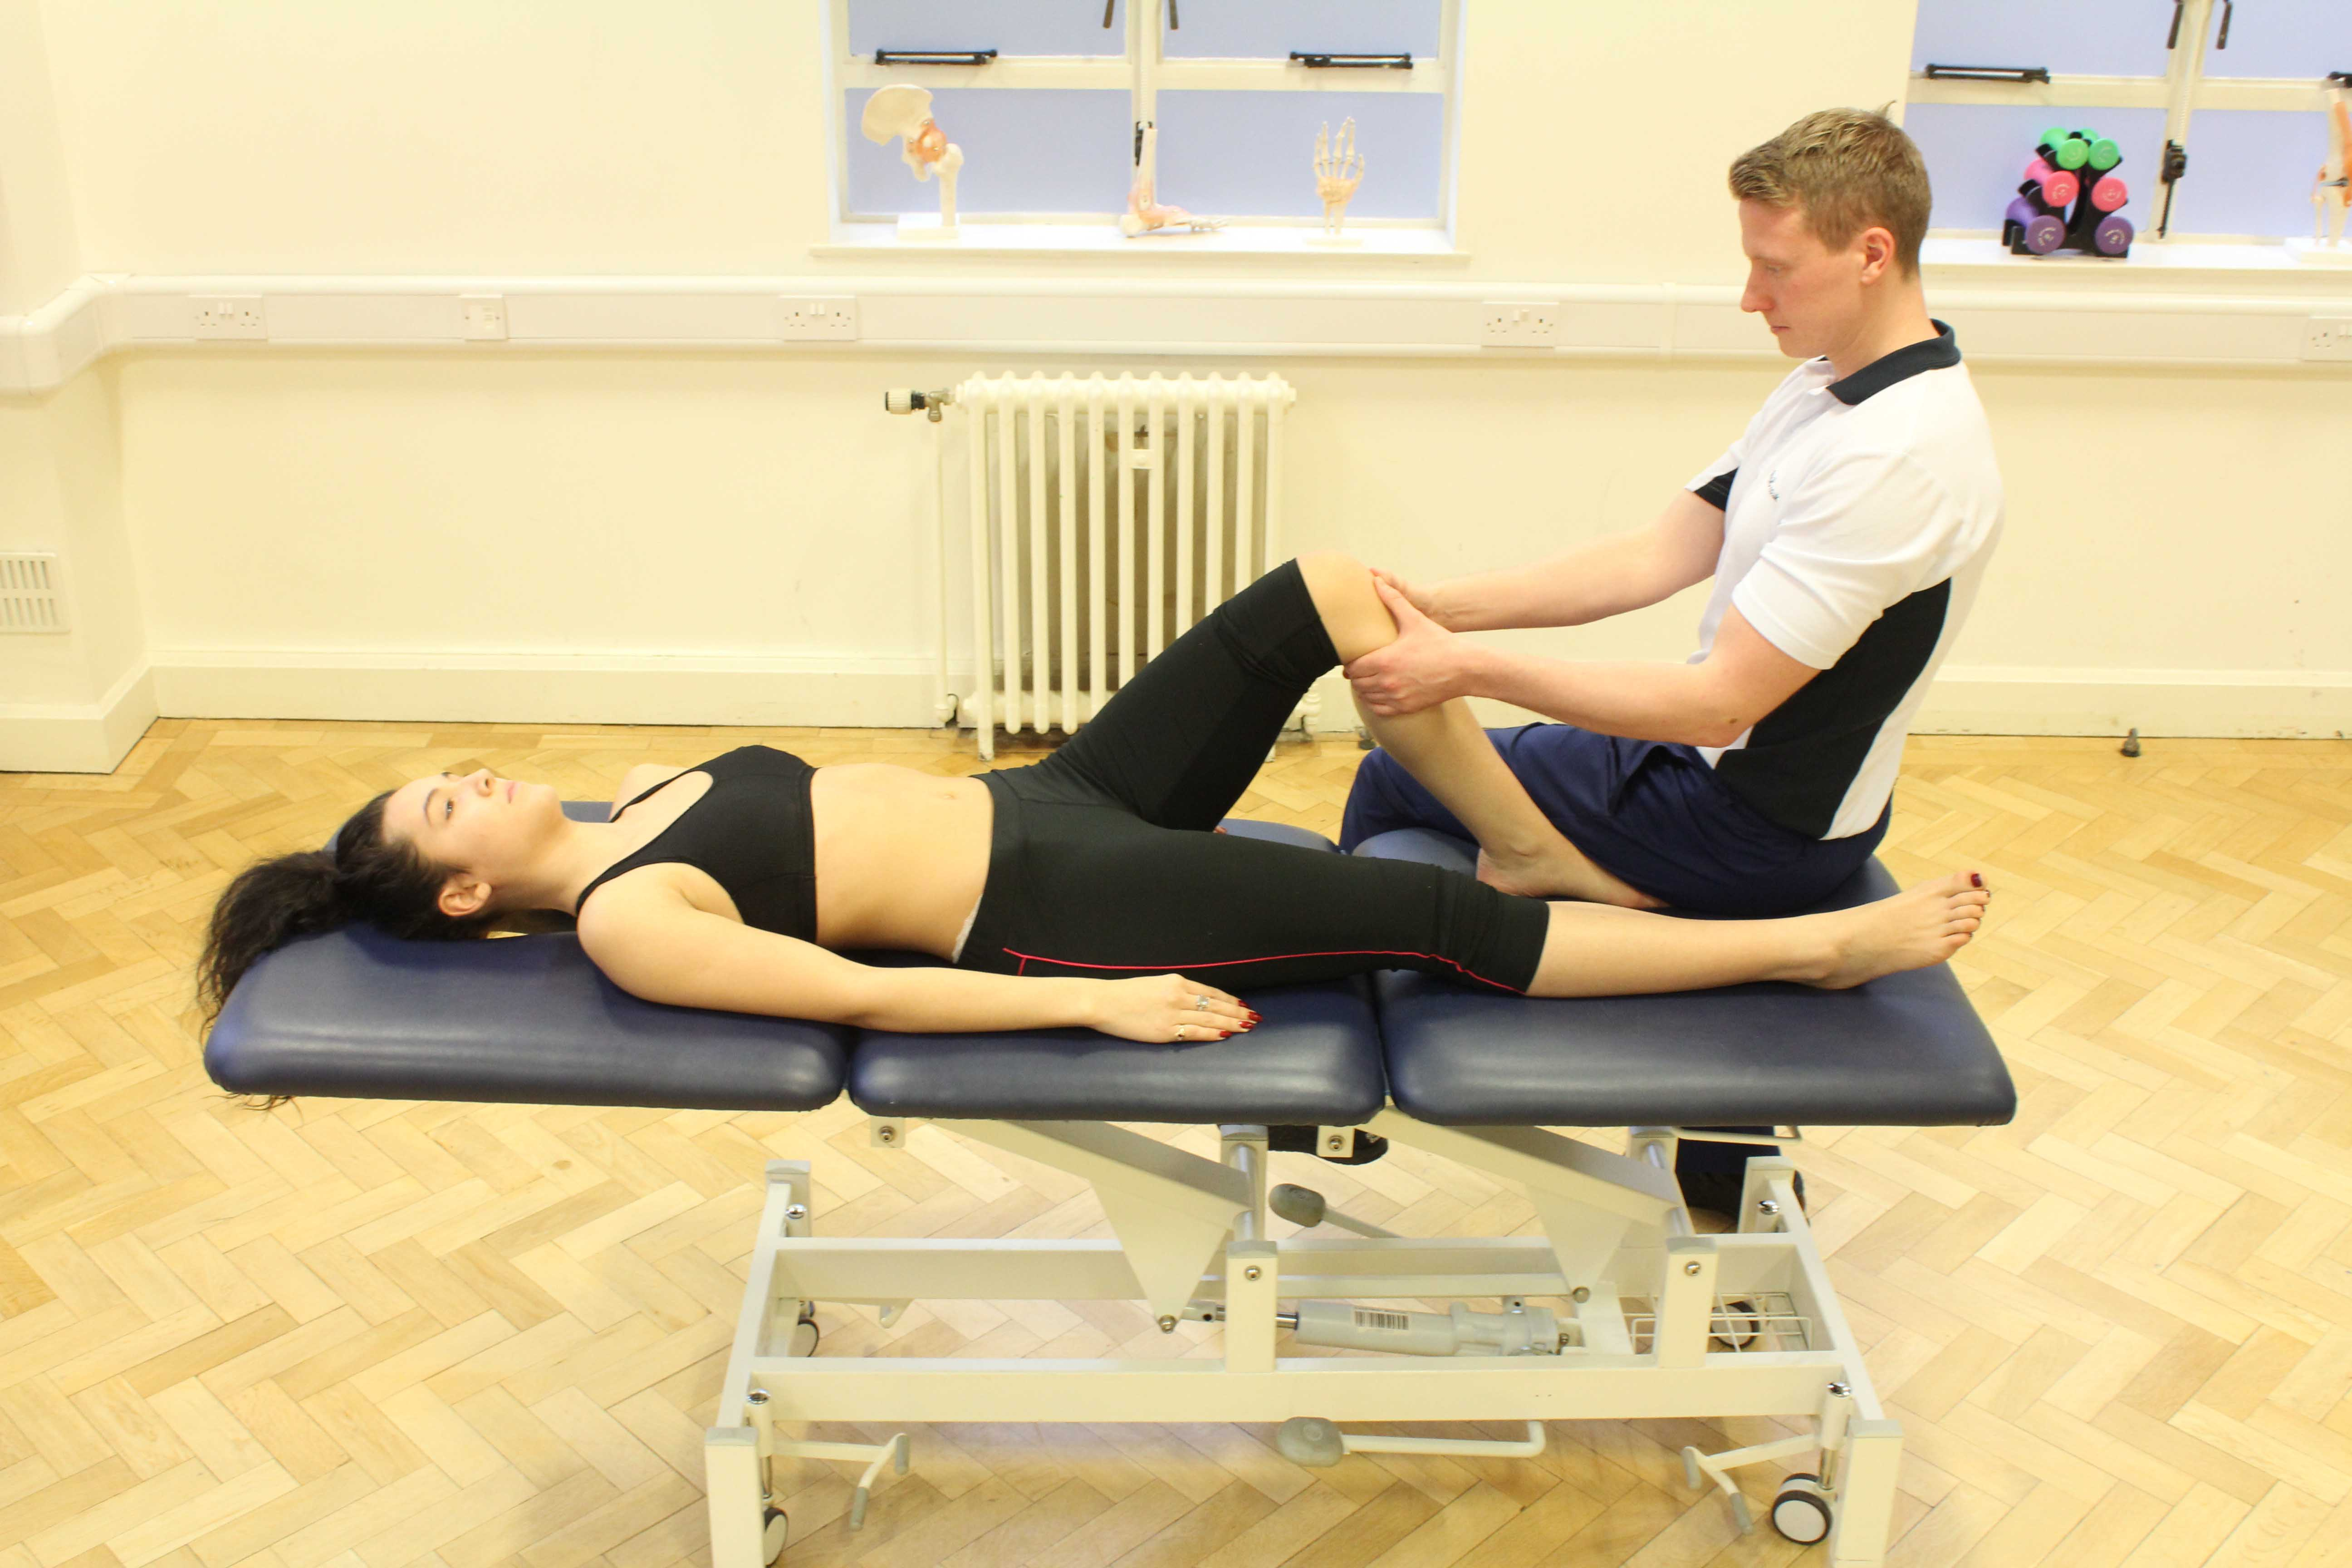 Mobilisations of the knee joint by experienced musculoskeletal physiotherapist